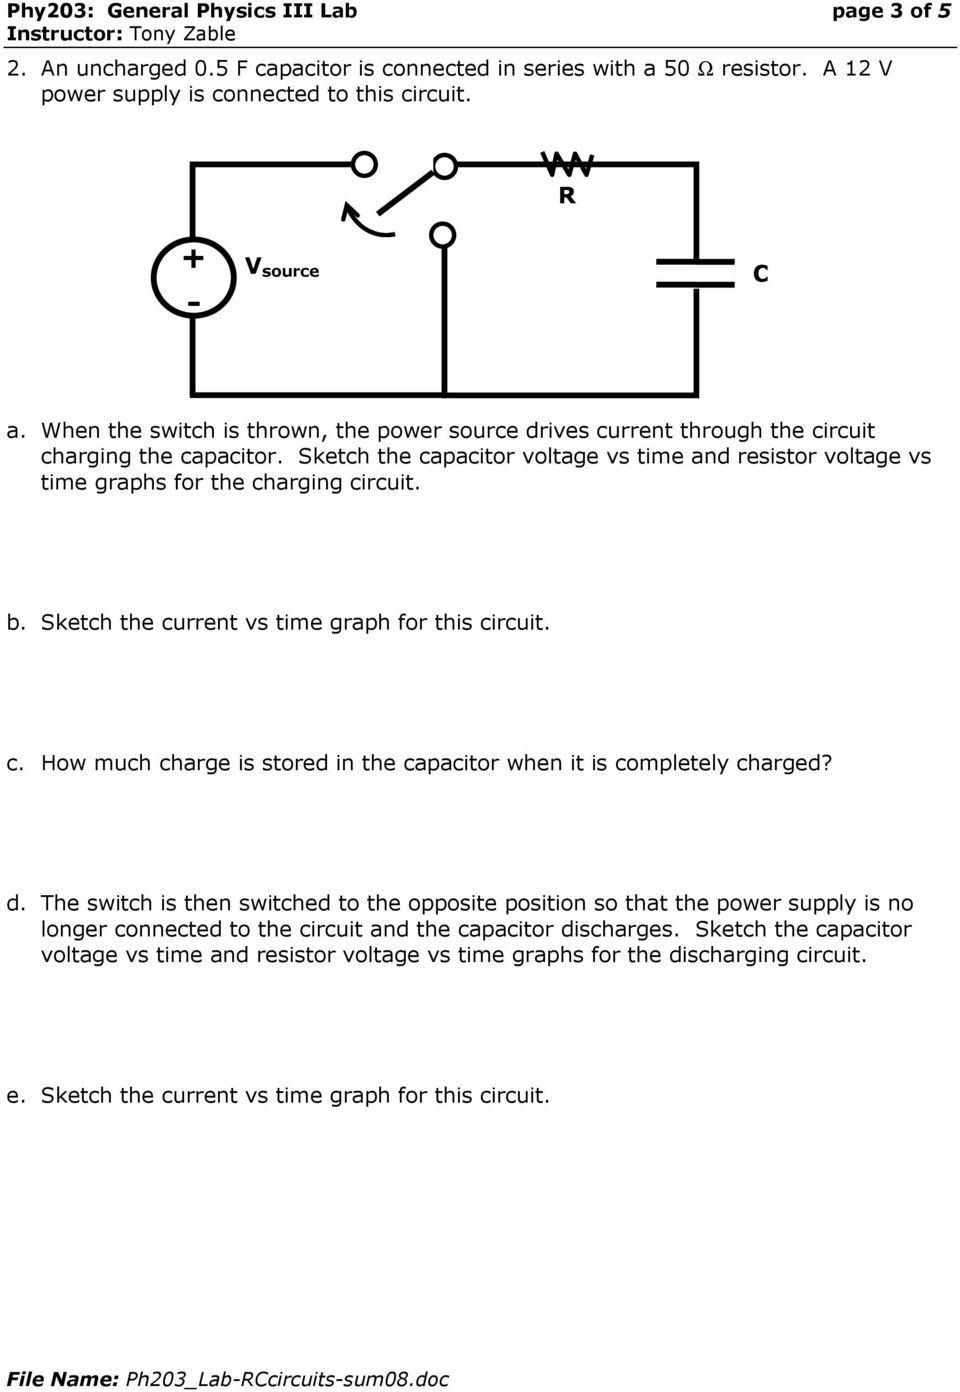 Experiment Rc Circuits Pdf Capacitor Discharge Circuit Sketch The Voltage Vs Time And Resistor Graphs For Charging